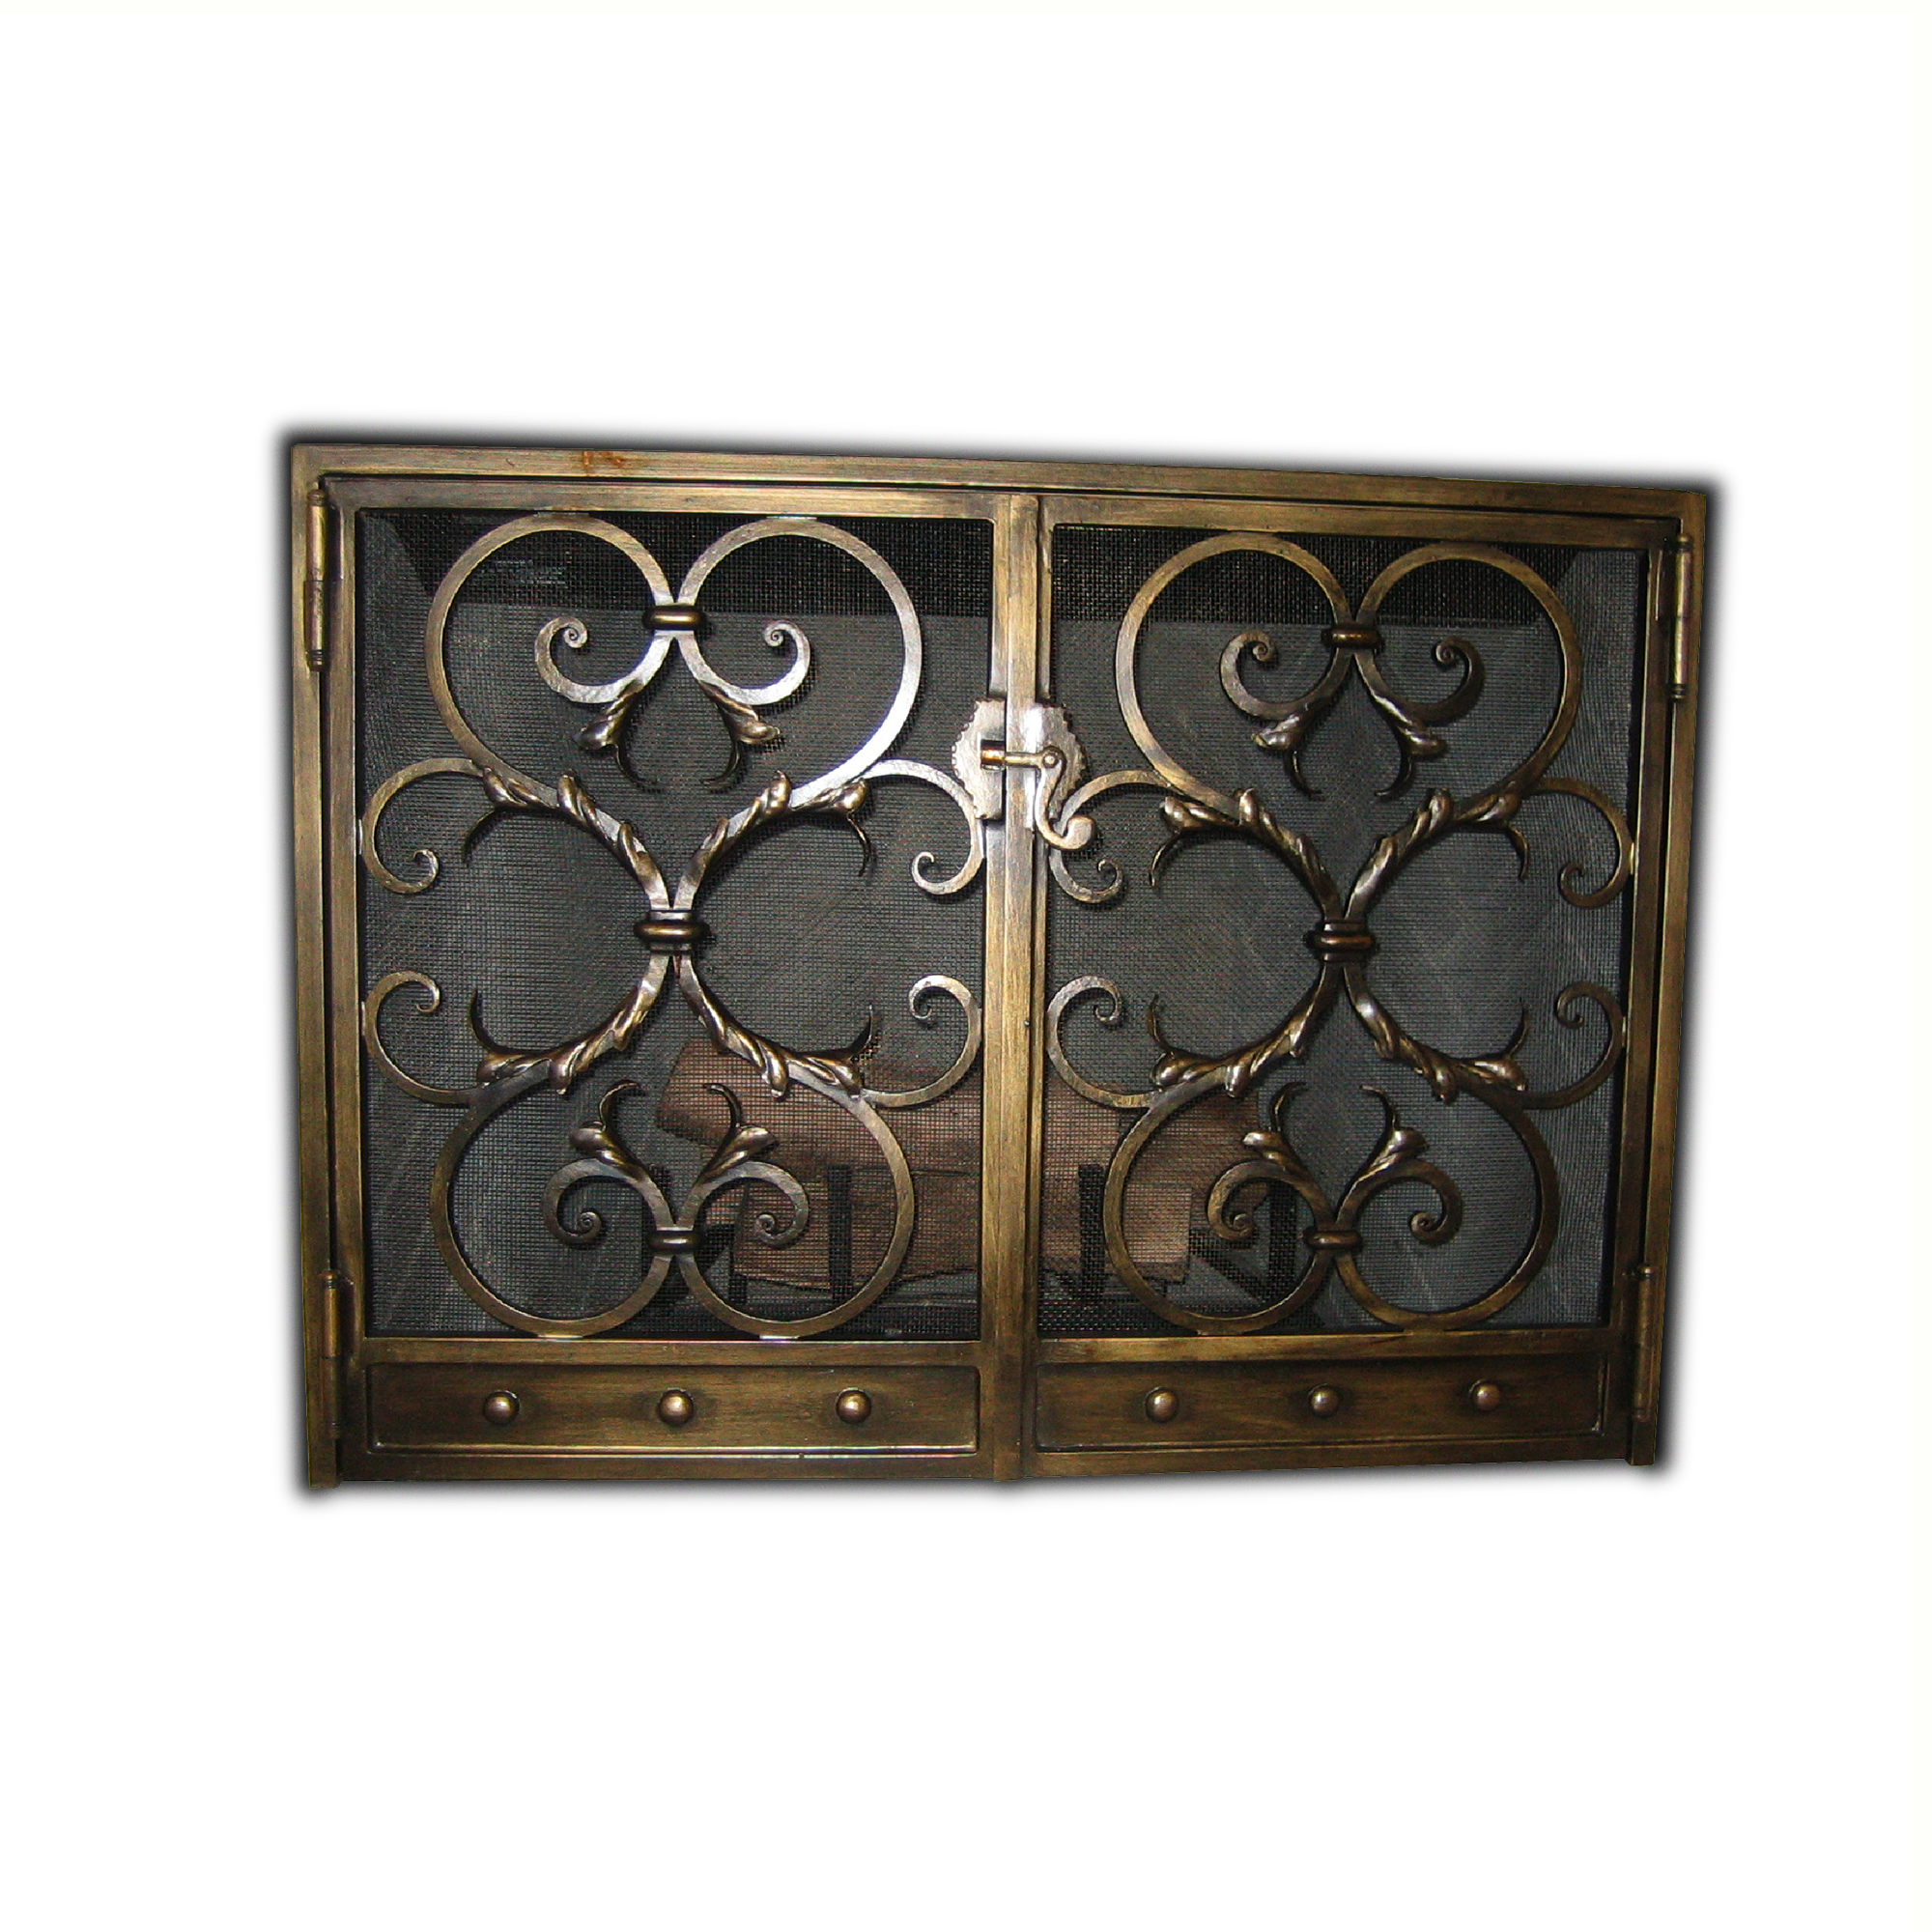 12003-ir Westchester Fireplace Screen – ADG Lighting Collection